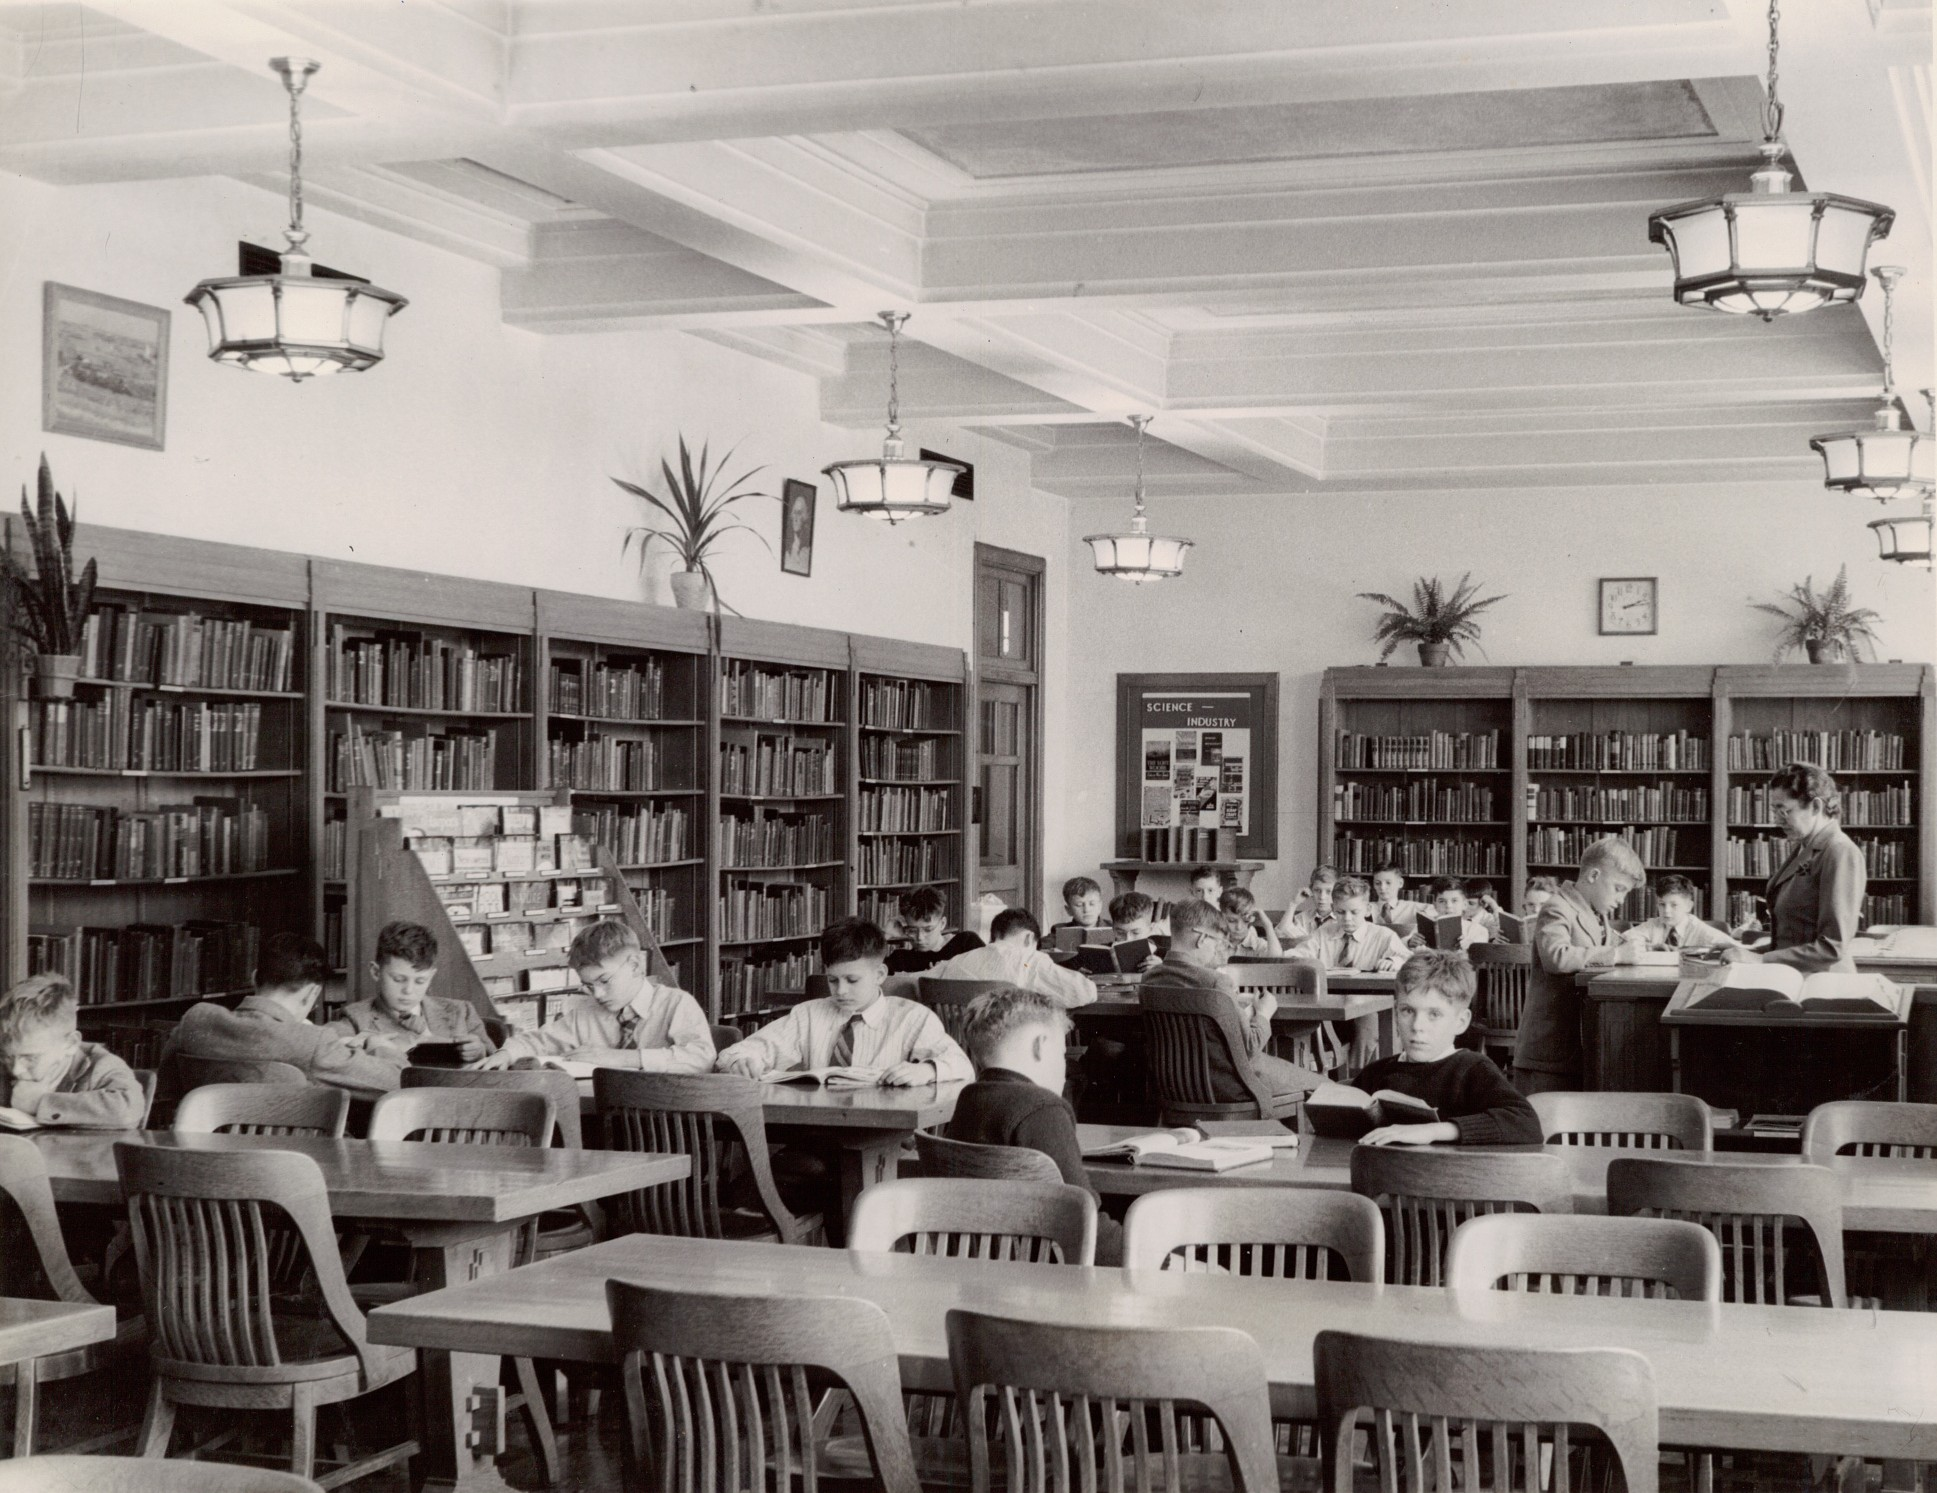 A library at MHS during the 1940s